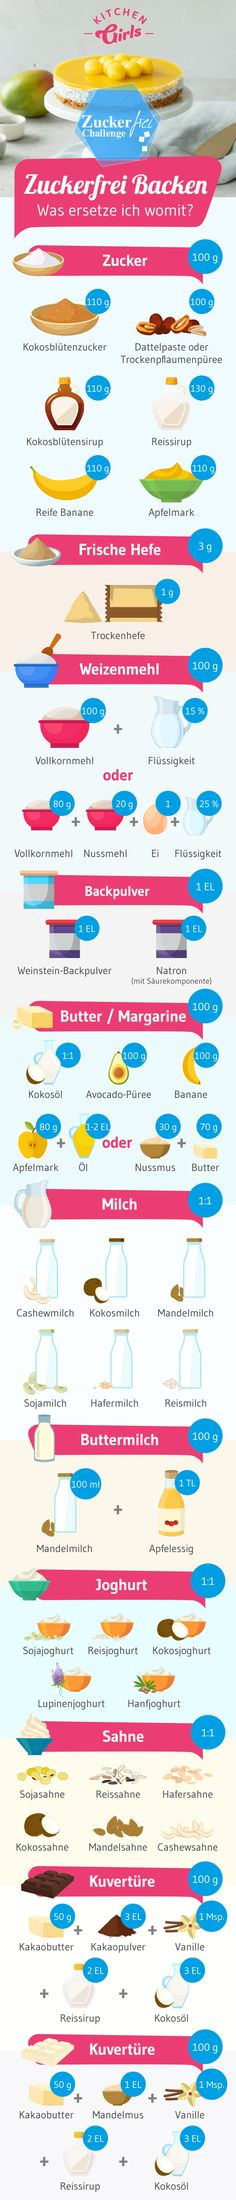 KiGis-Infografiken-Zuckerfrei-Backen-klein KiGis Infographics Sugar Free Baking Small KiGis Infographics Sugar Free Baking Small The post KiGis Infographics Sugar Free Baking Small appeared first on cake recipes. Snacks For Work, Easy Snacks, Detox Recipes, Smoothie Recipes, Law Carb, Sugar Free Baking, Snack Video, Toddler Snacks, Healthy Snacks For Diabetics